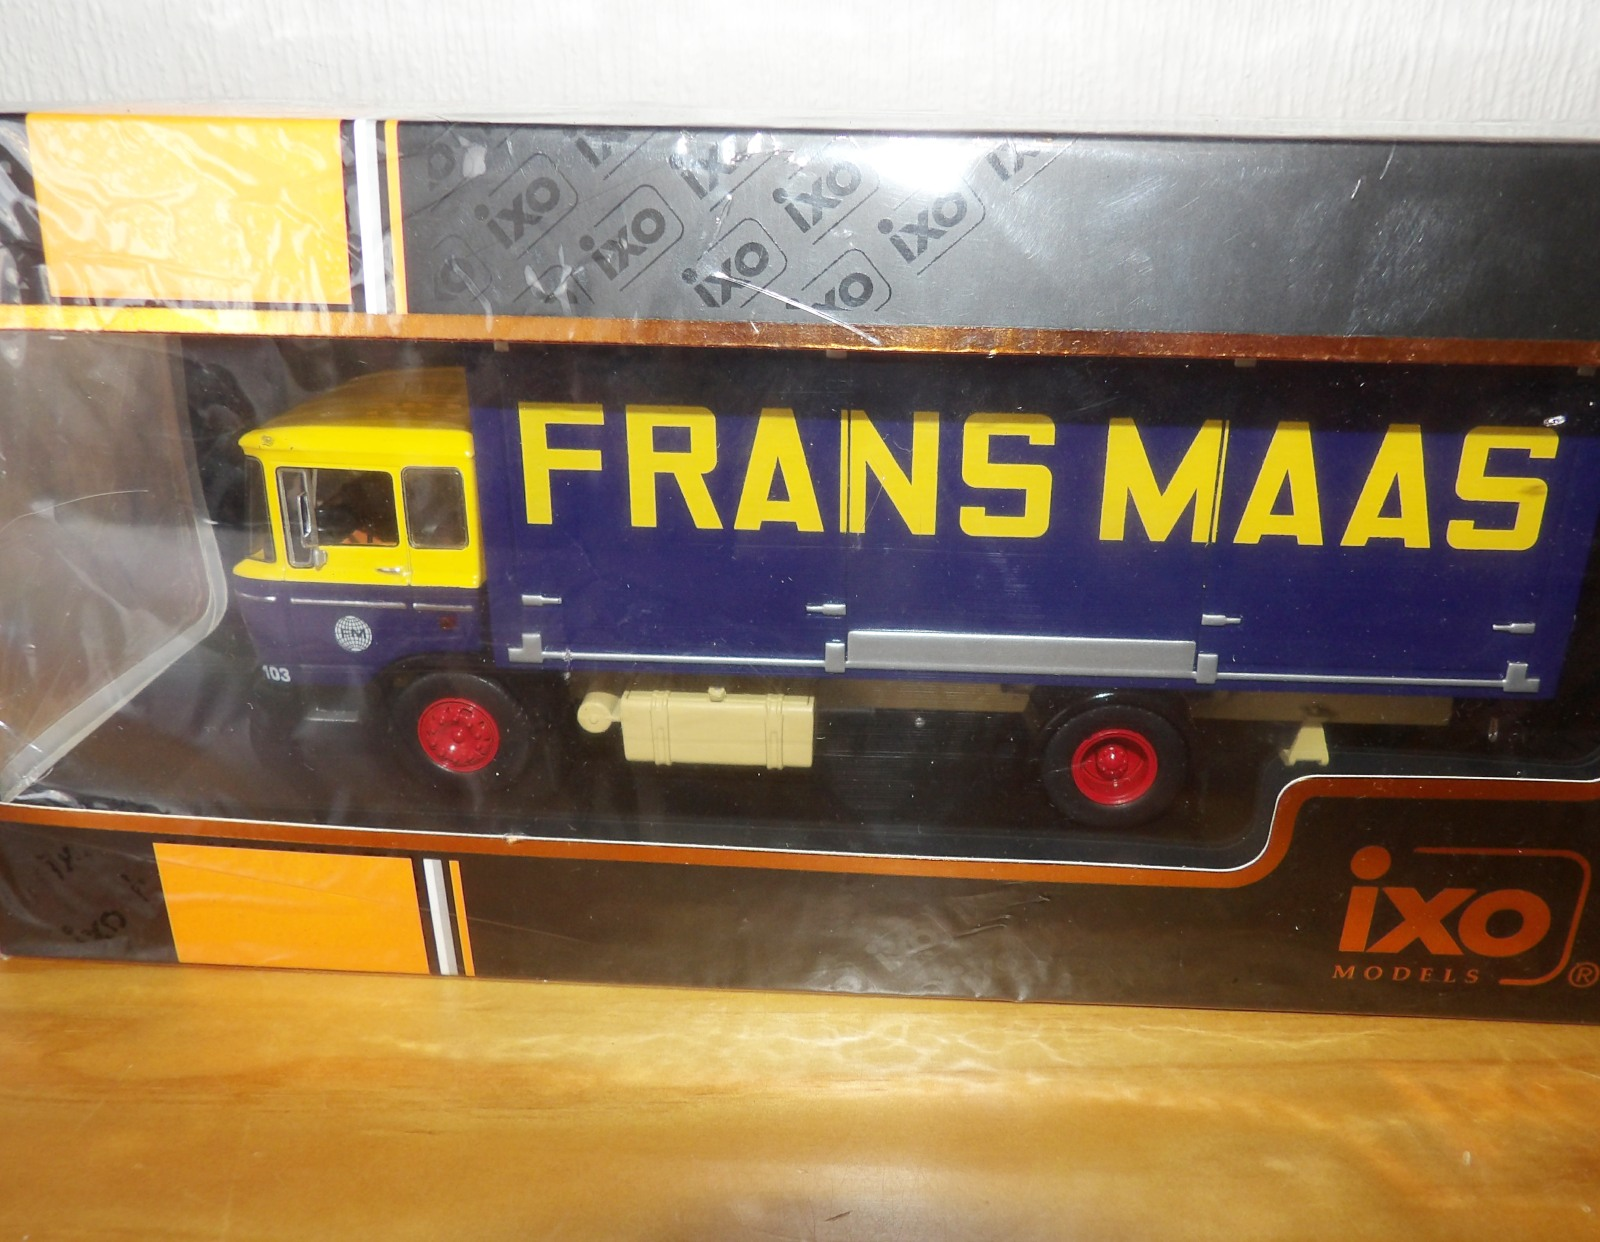 Lot 718 - 1.43 Scale IXO DAF 2600 1965 FRANS MAAS. P&P Group 1 (£14+VAT for the first lot and £1+VAT for